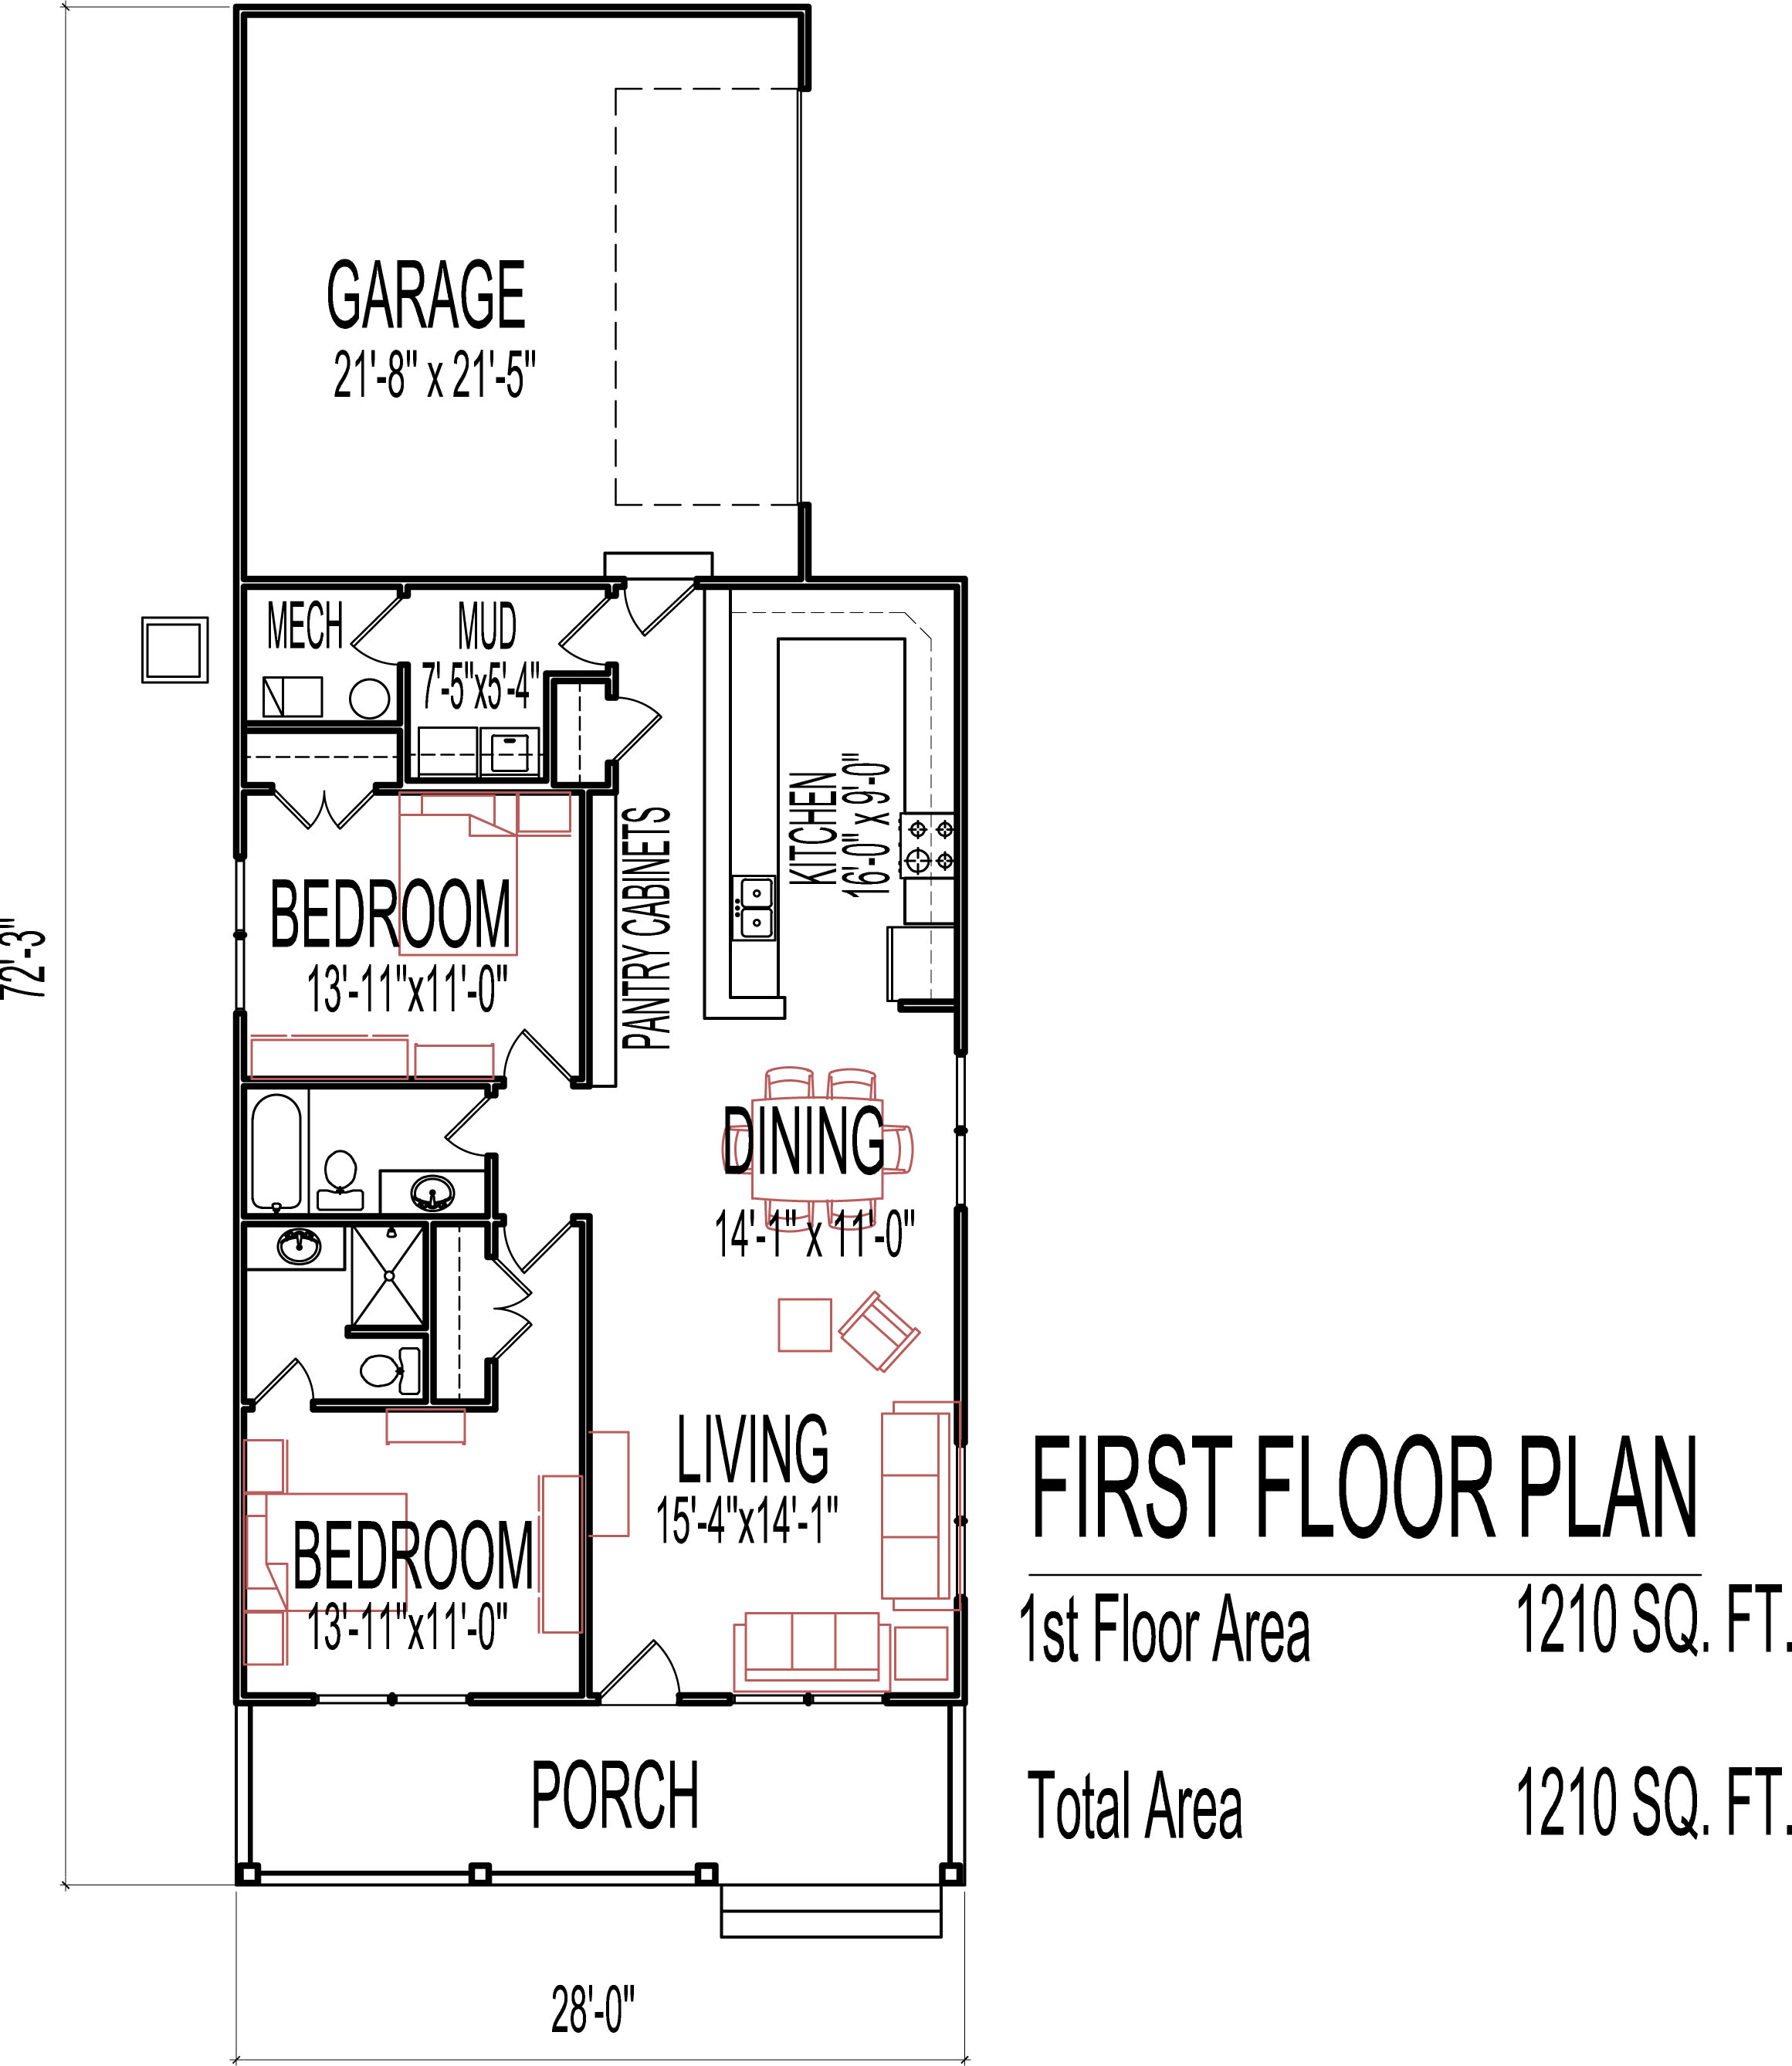 Small Two Bedroom House Plans Low Cost 1200 Sq Ft One Story